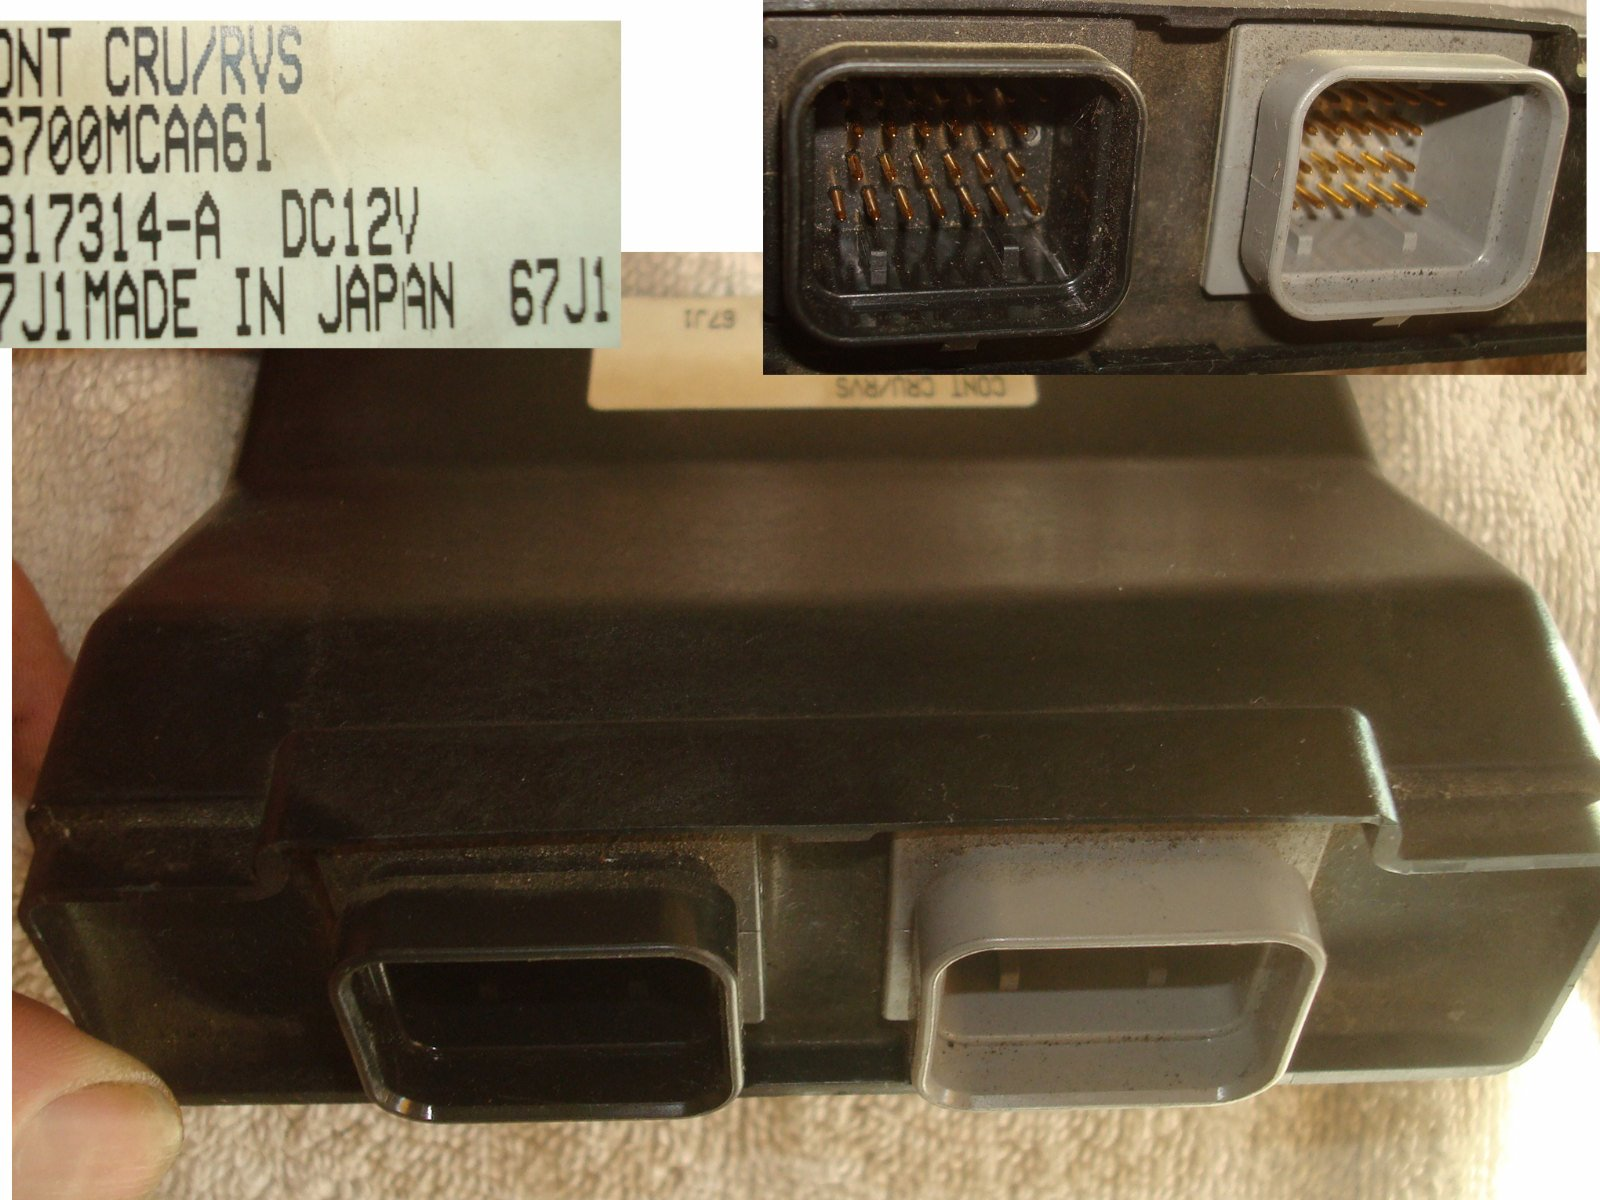 01 to 10 CONTROLLER, AUTO CRUISE 36700-MCA- GL1800